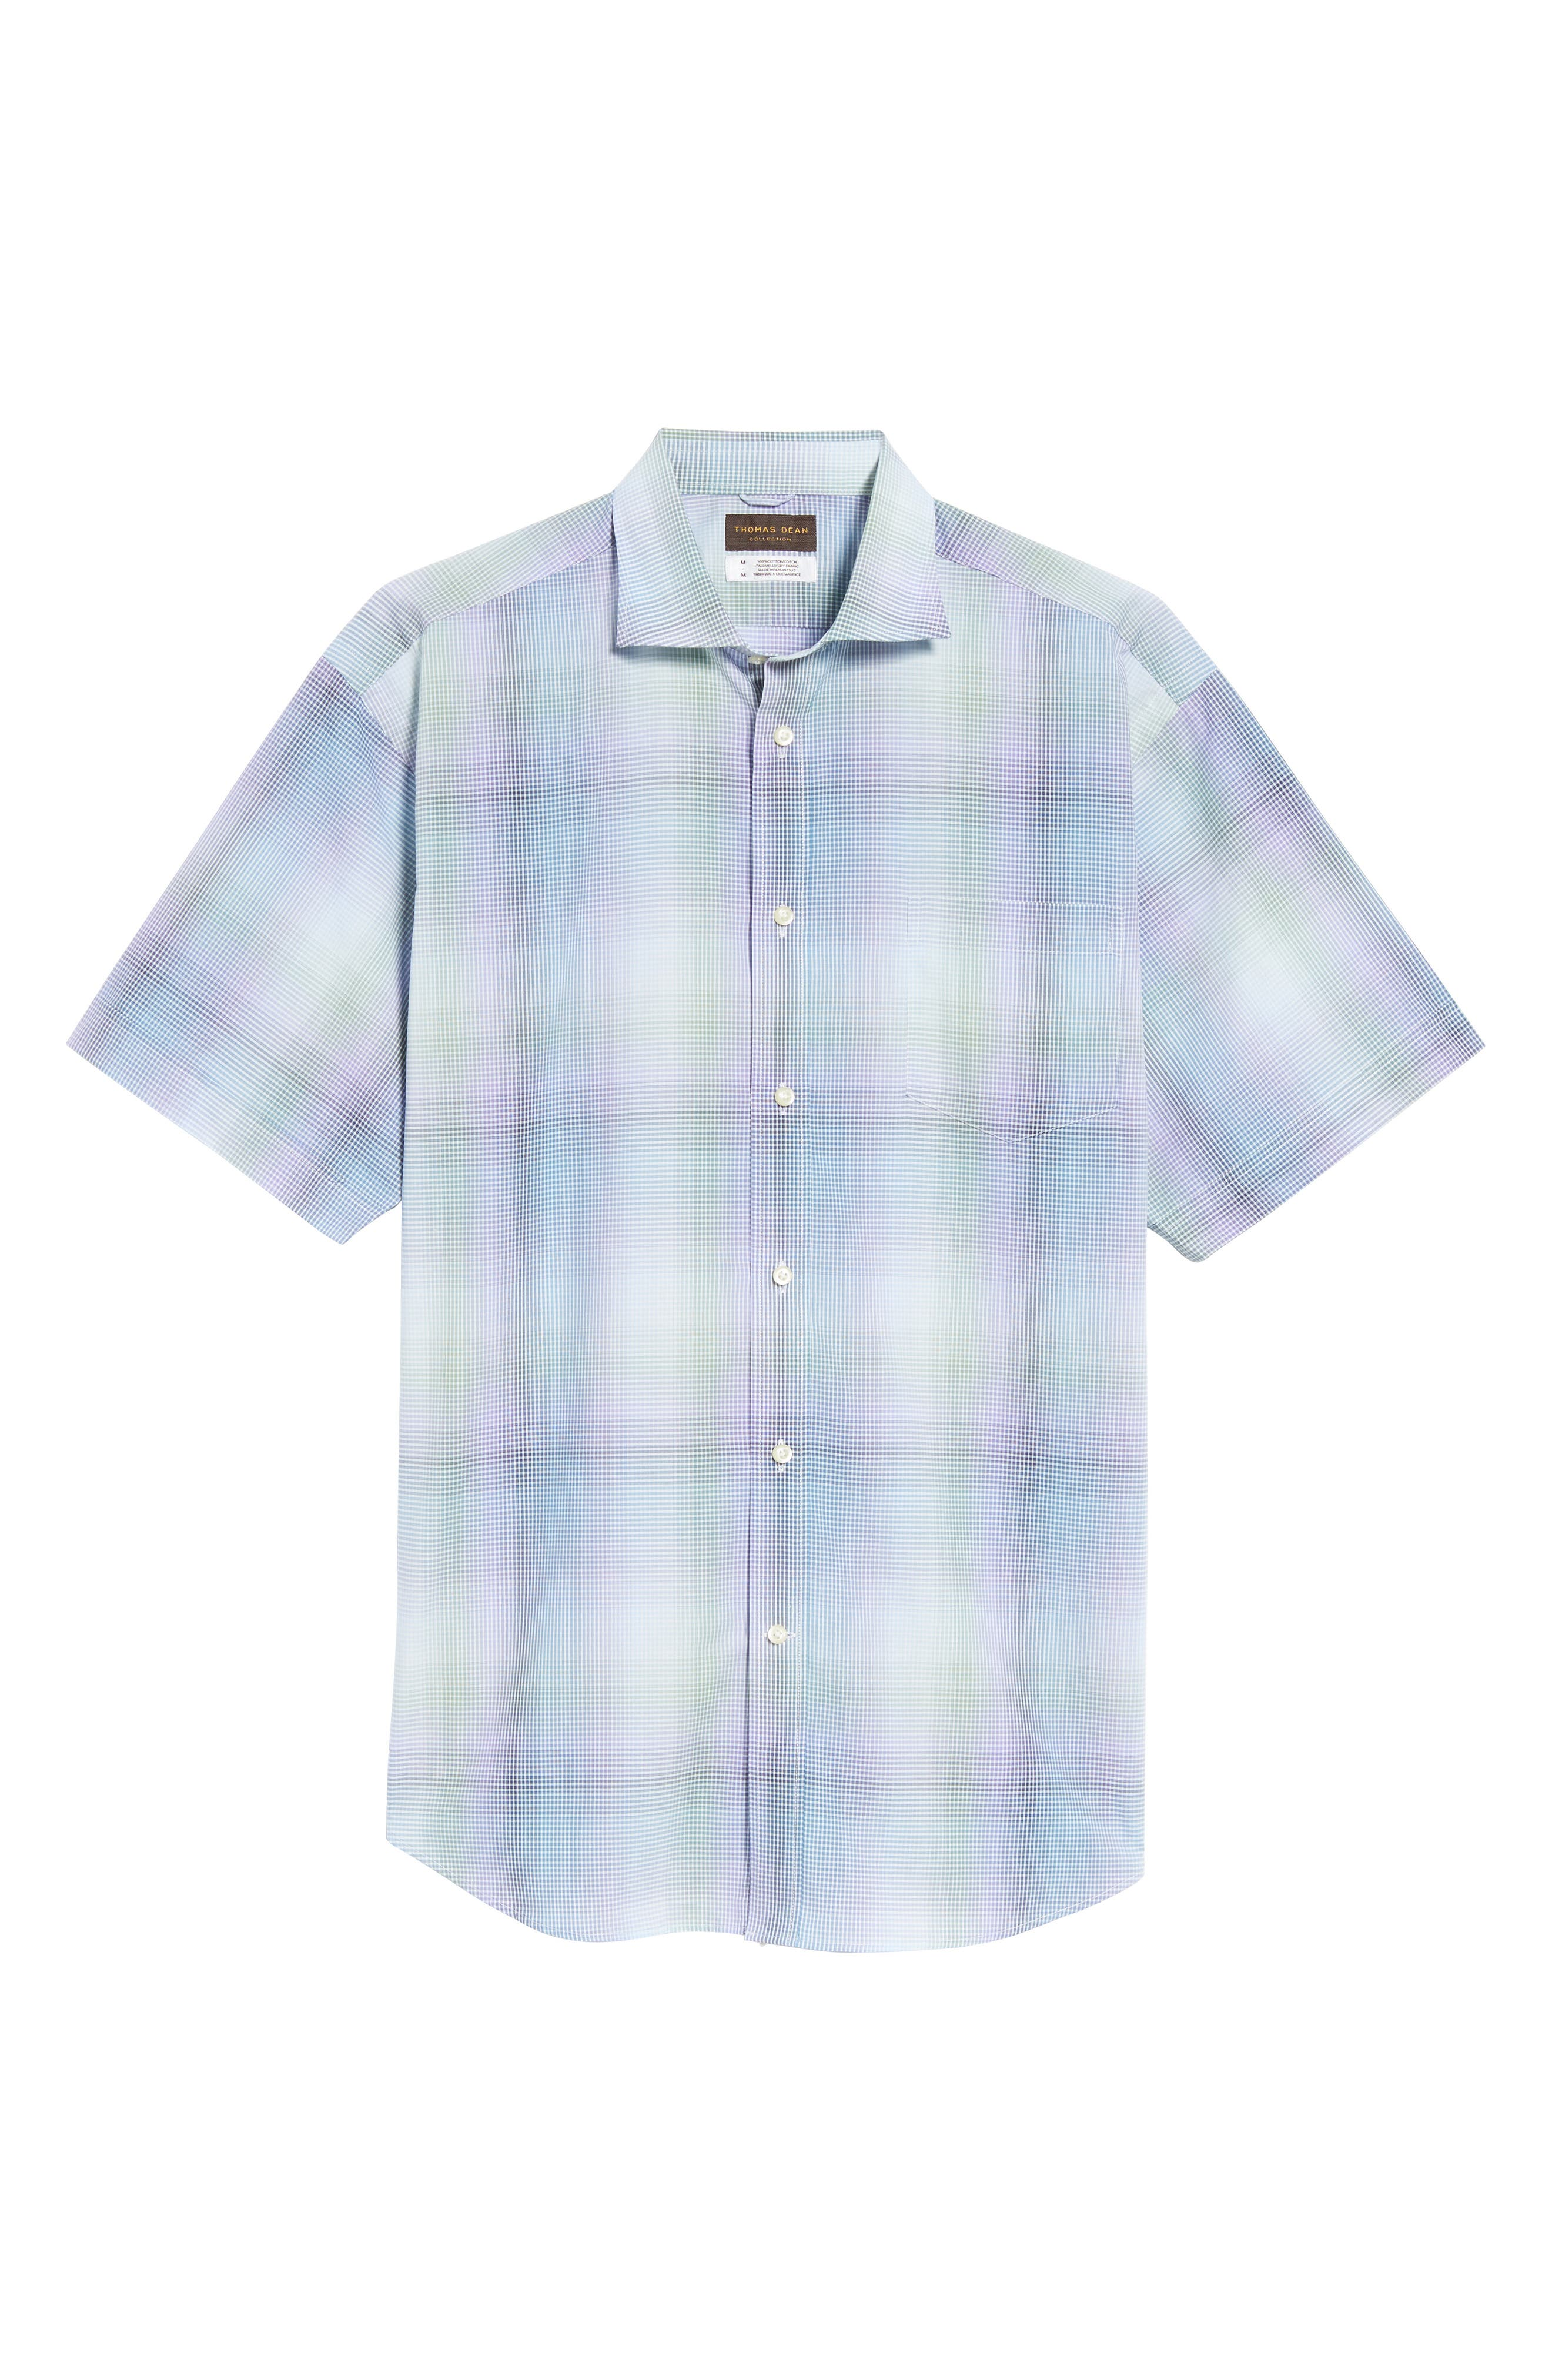 Classic Fit Shadow Check Sport Shirt,                             Alternate thumbnail 6, color,                             500